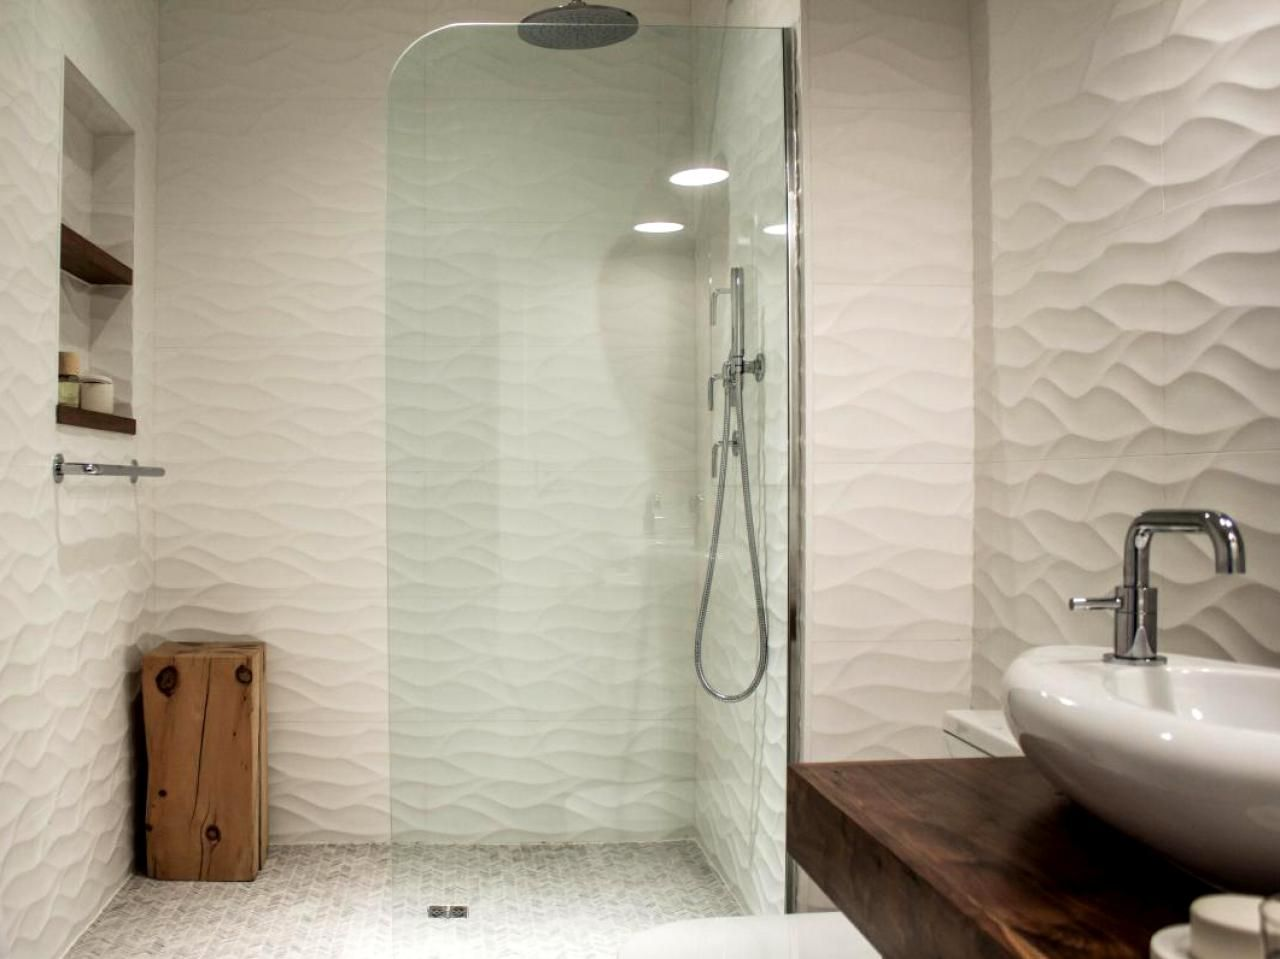 Bathroom Tiles Latest Trends 10 best bathroom remodeling trends | bath crashers | diy | bitty